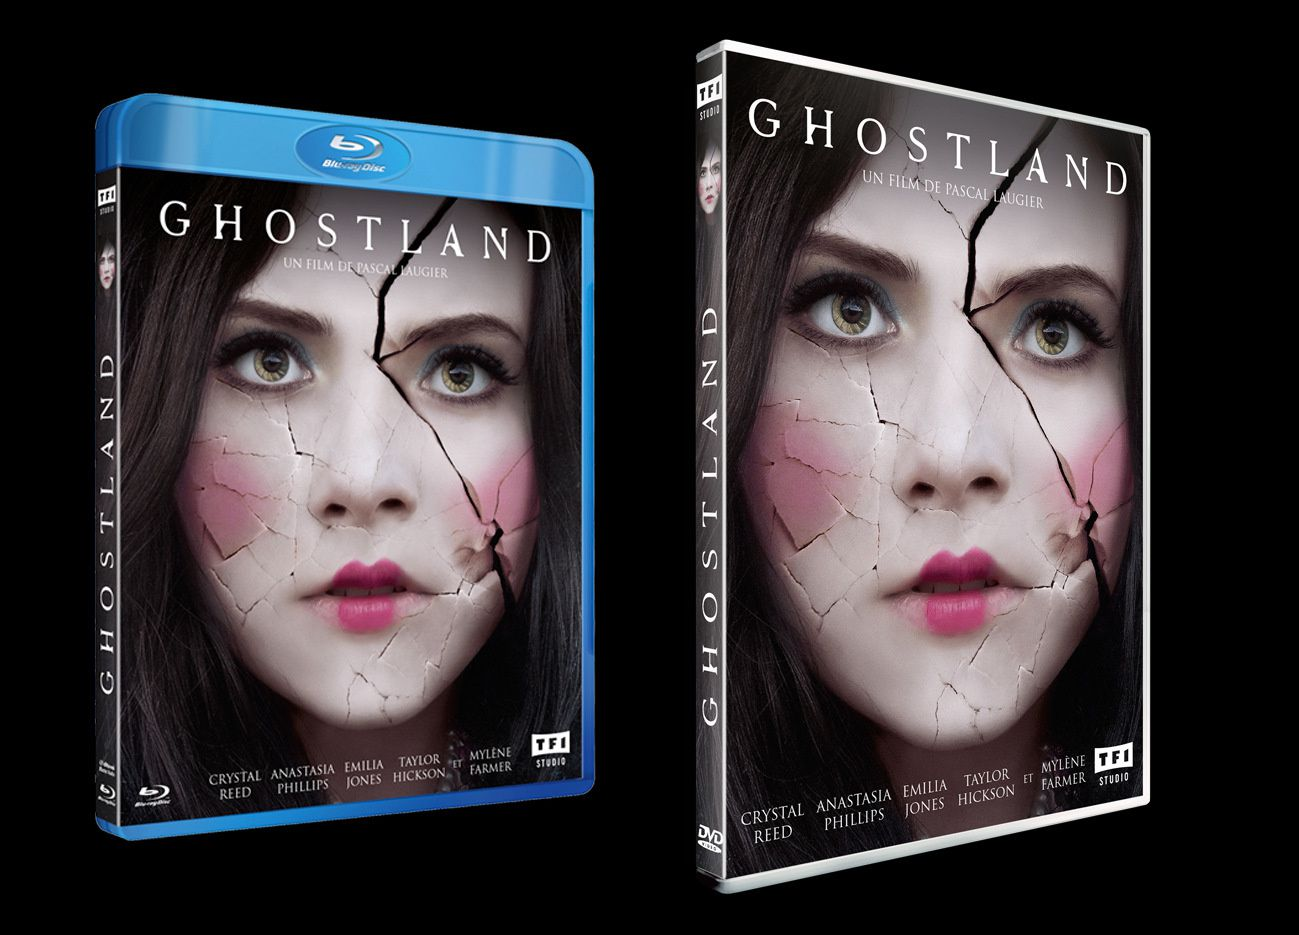 GhostLand DVD/Blu-Ray